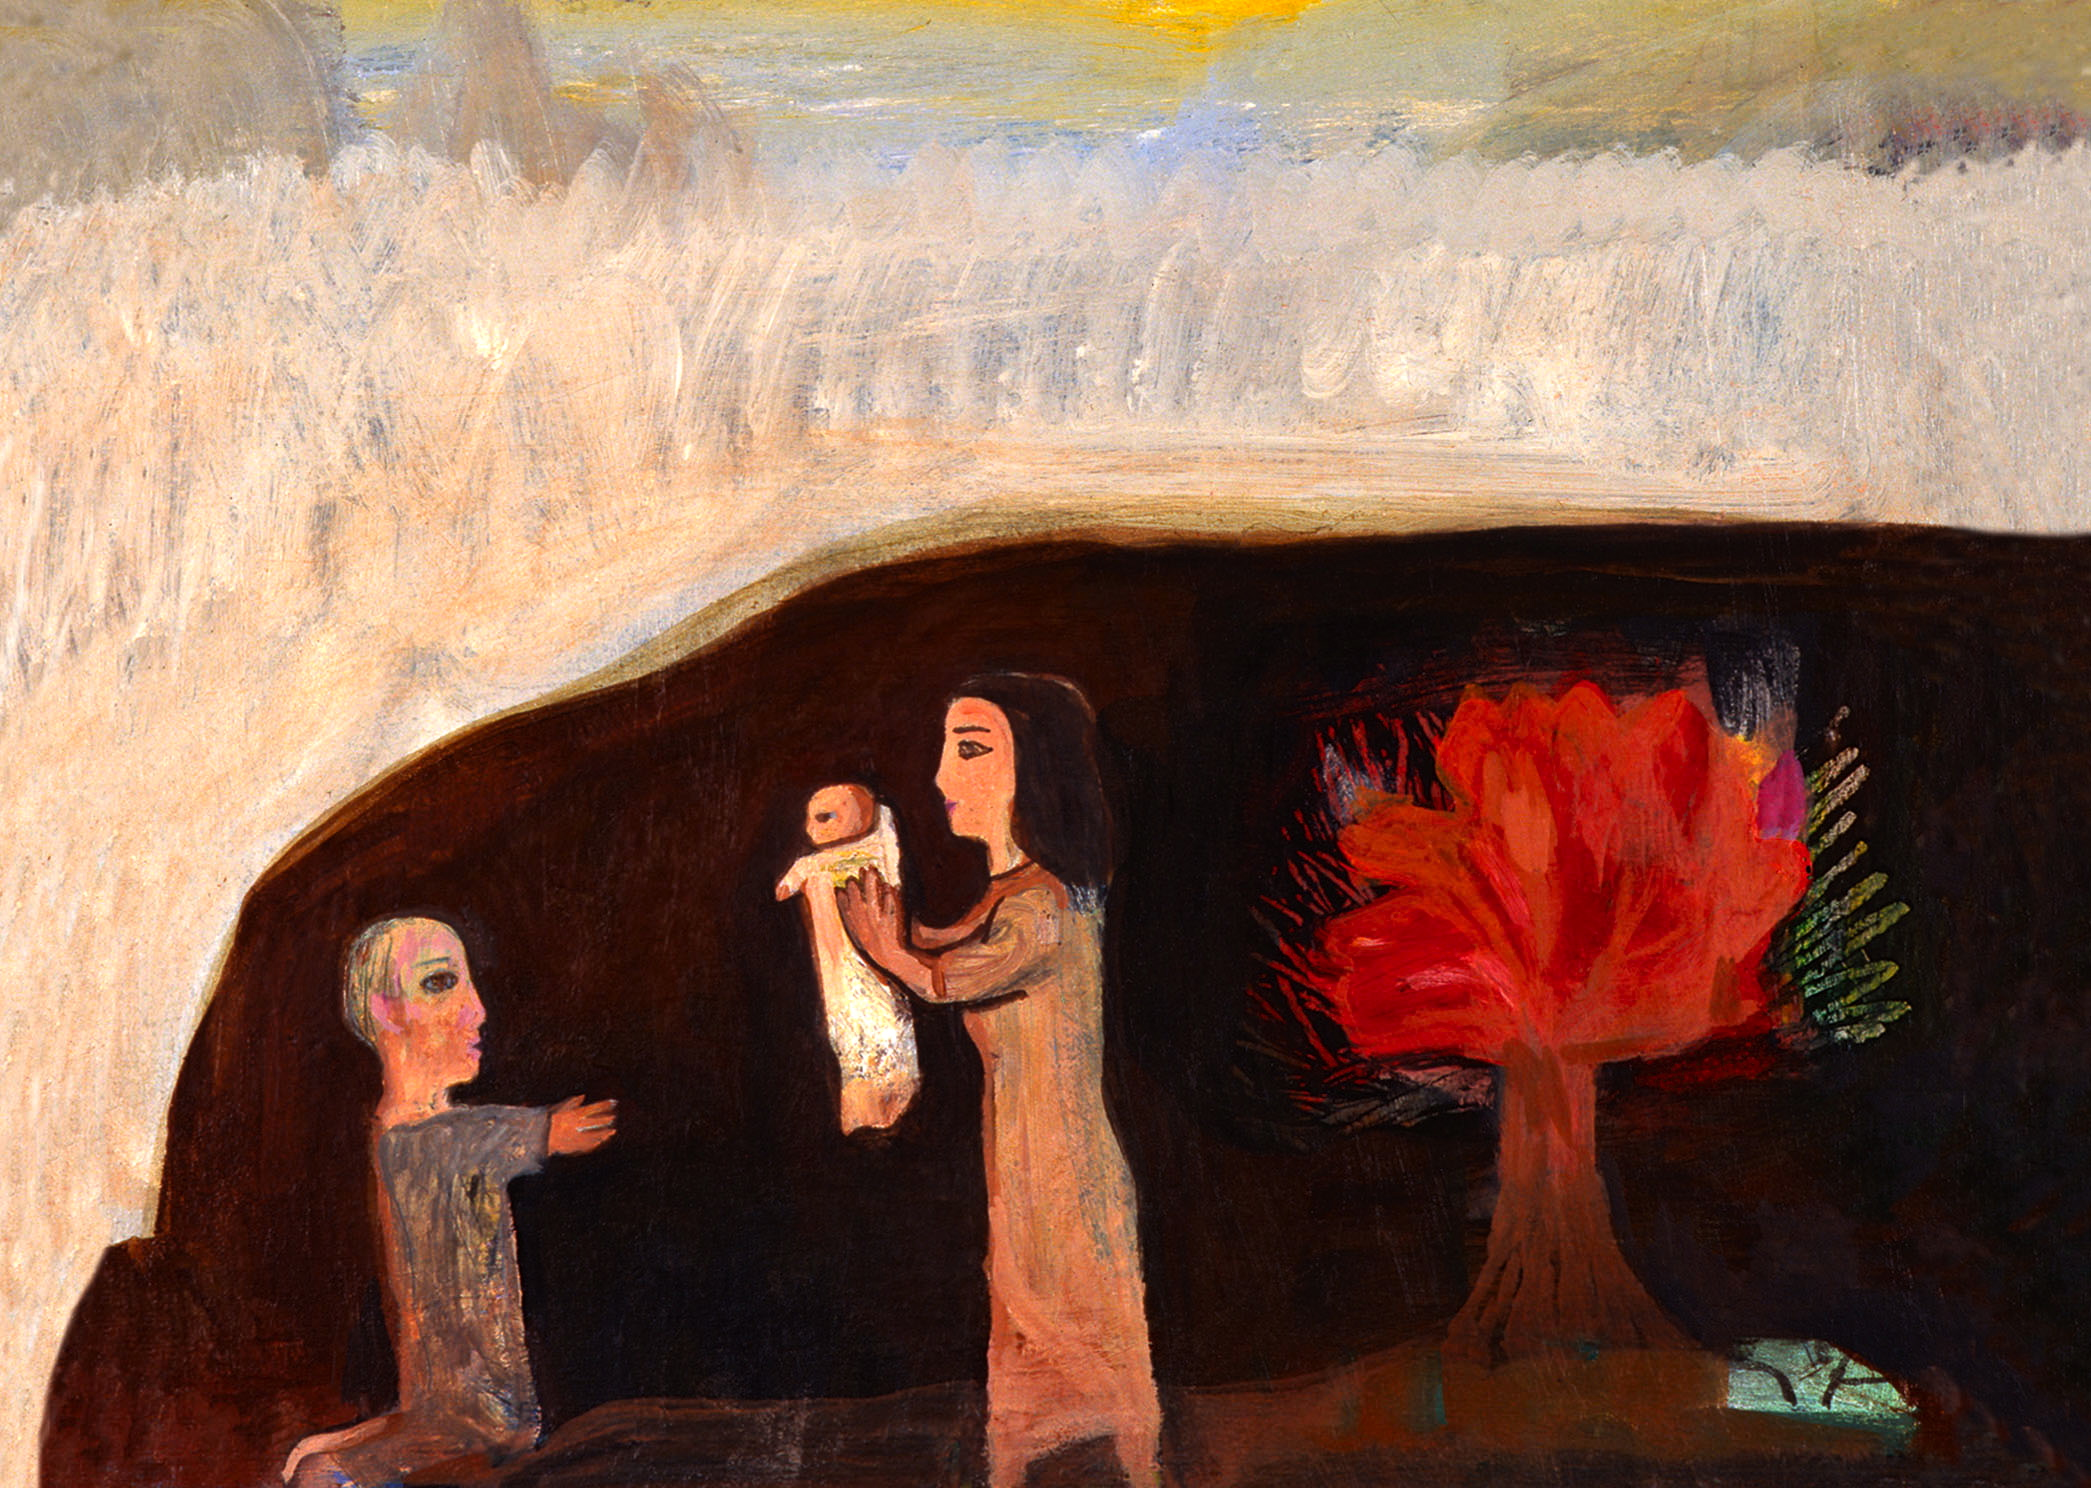 Nativity-with-Burning-Bush-1991-Albert-Herbert-1925-2008